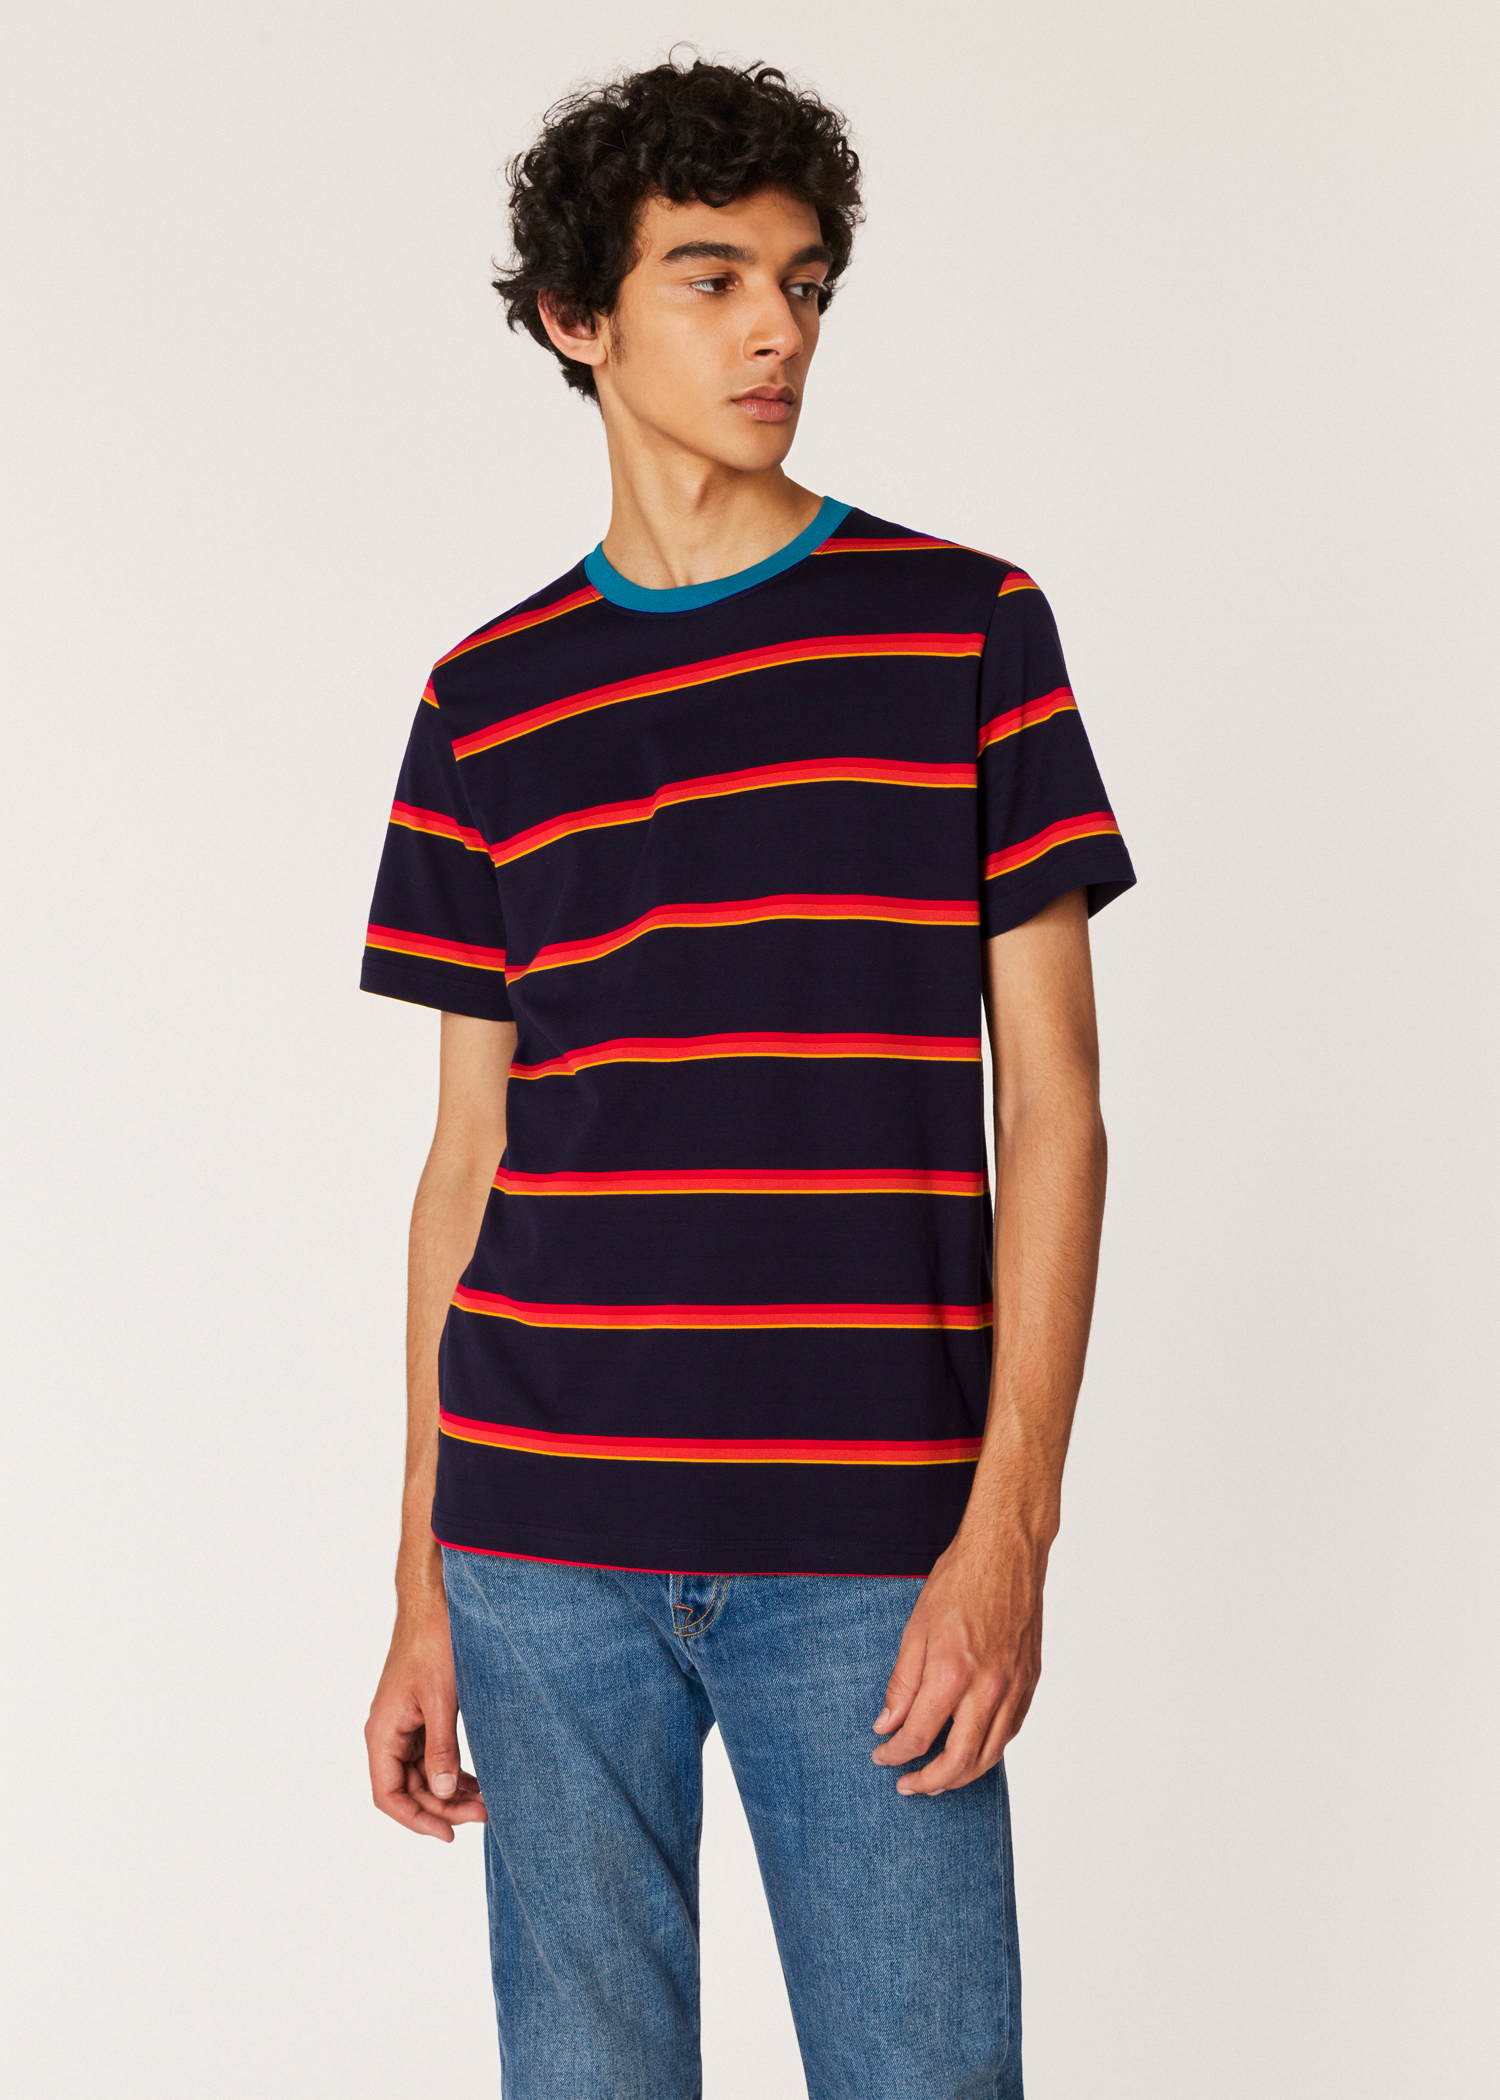 1d72f4d0 Model front close up - Men's Dark Navy T-Shirt With Red Stripes Paul Smith